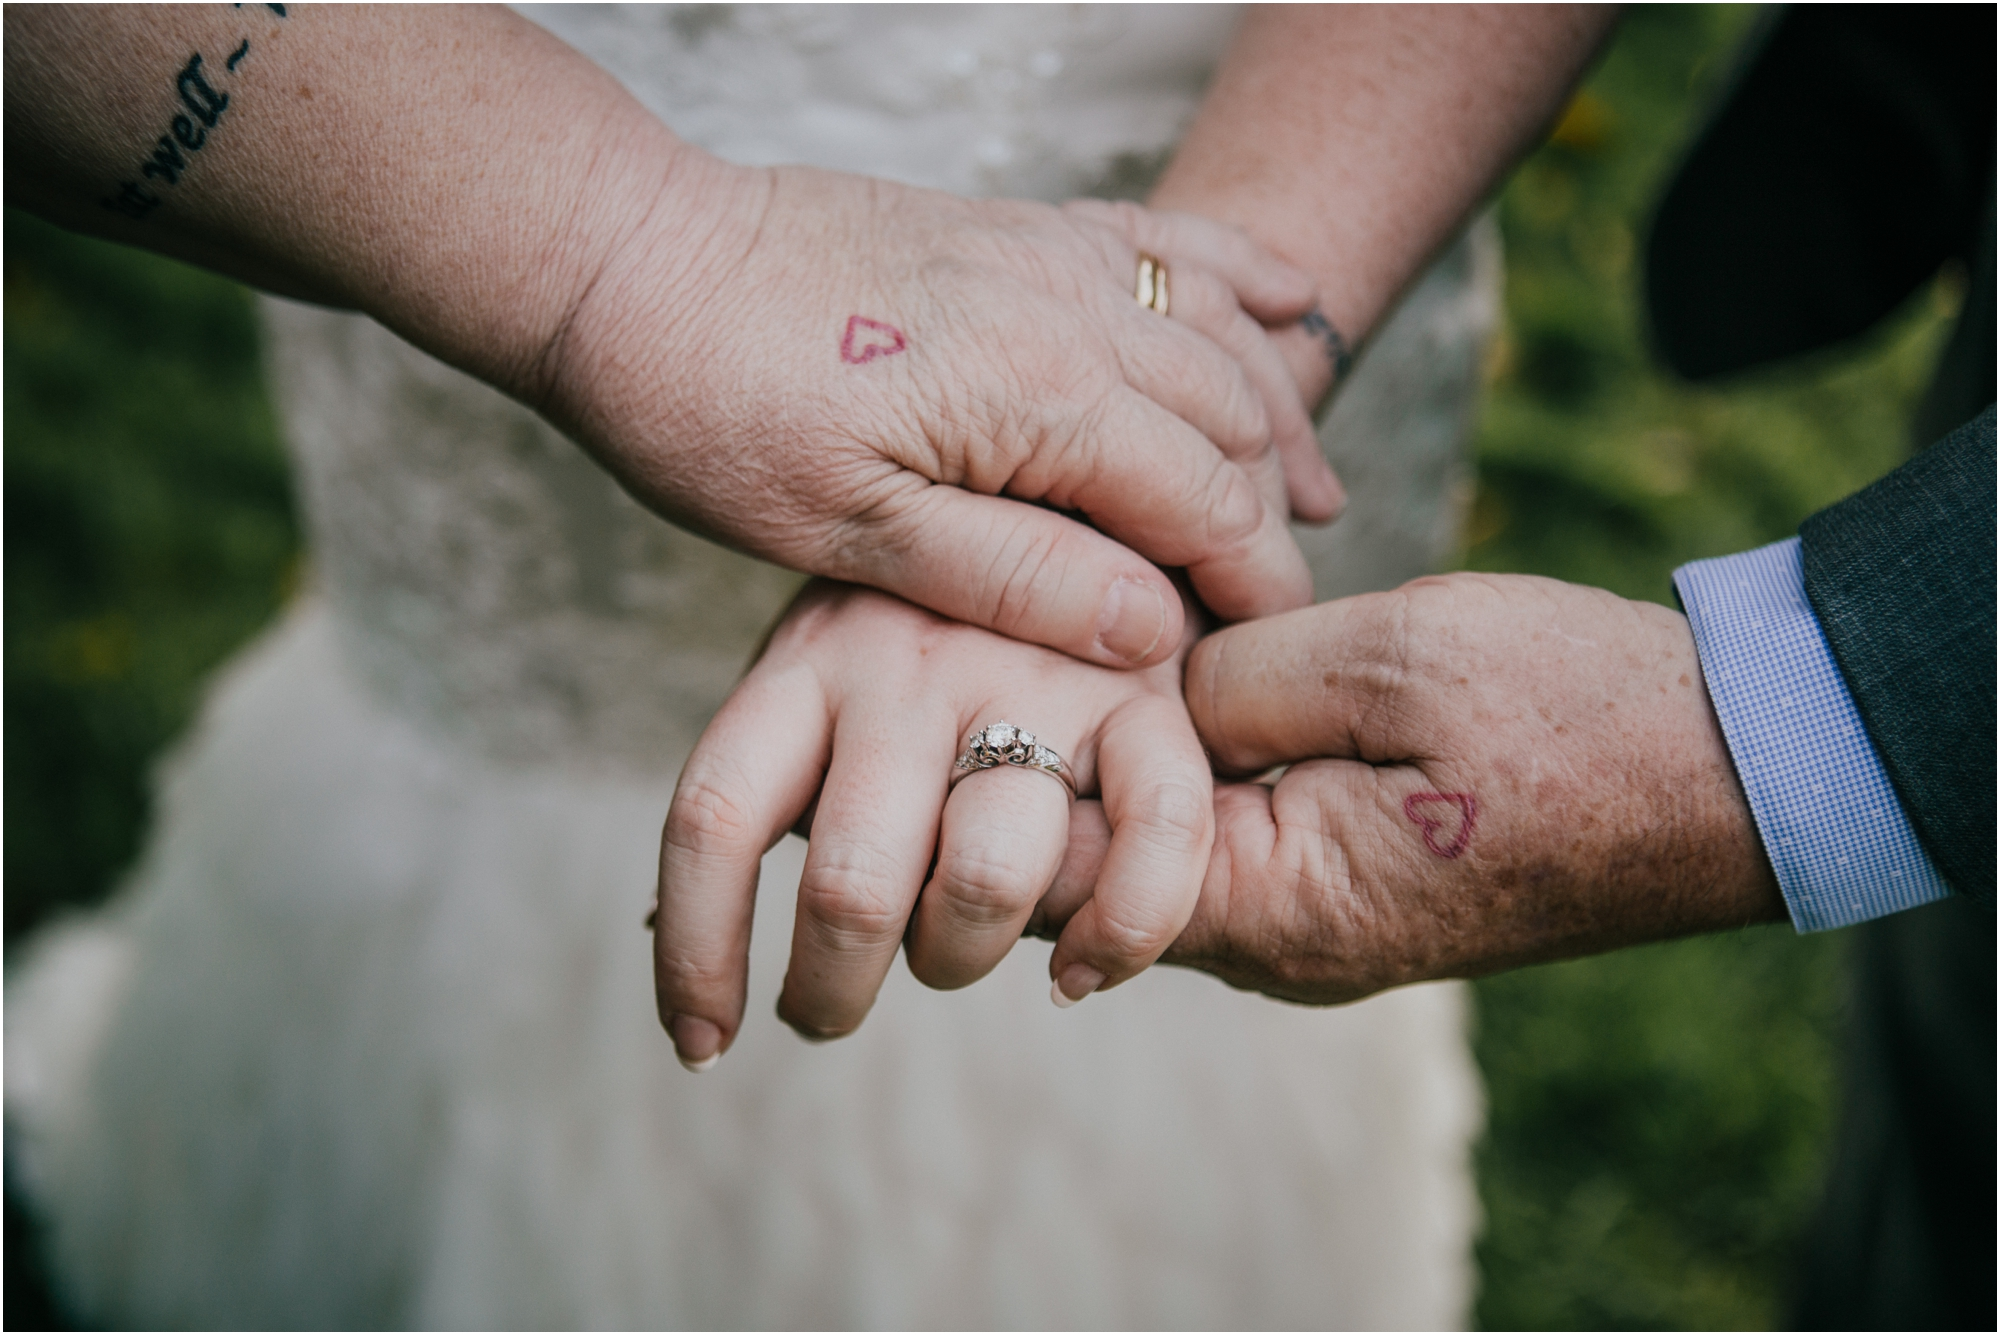 One of my favorite photos from the day! Bethany had drawn a little heart on her parent's hands one day, and they ended up getting it tattooed on!